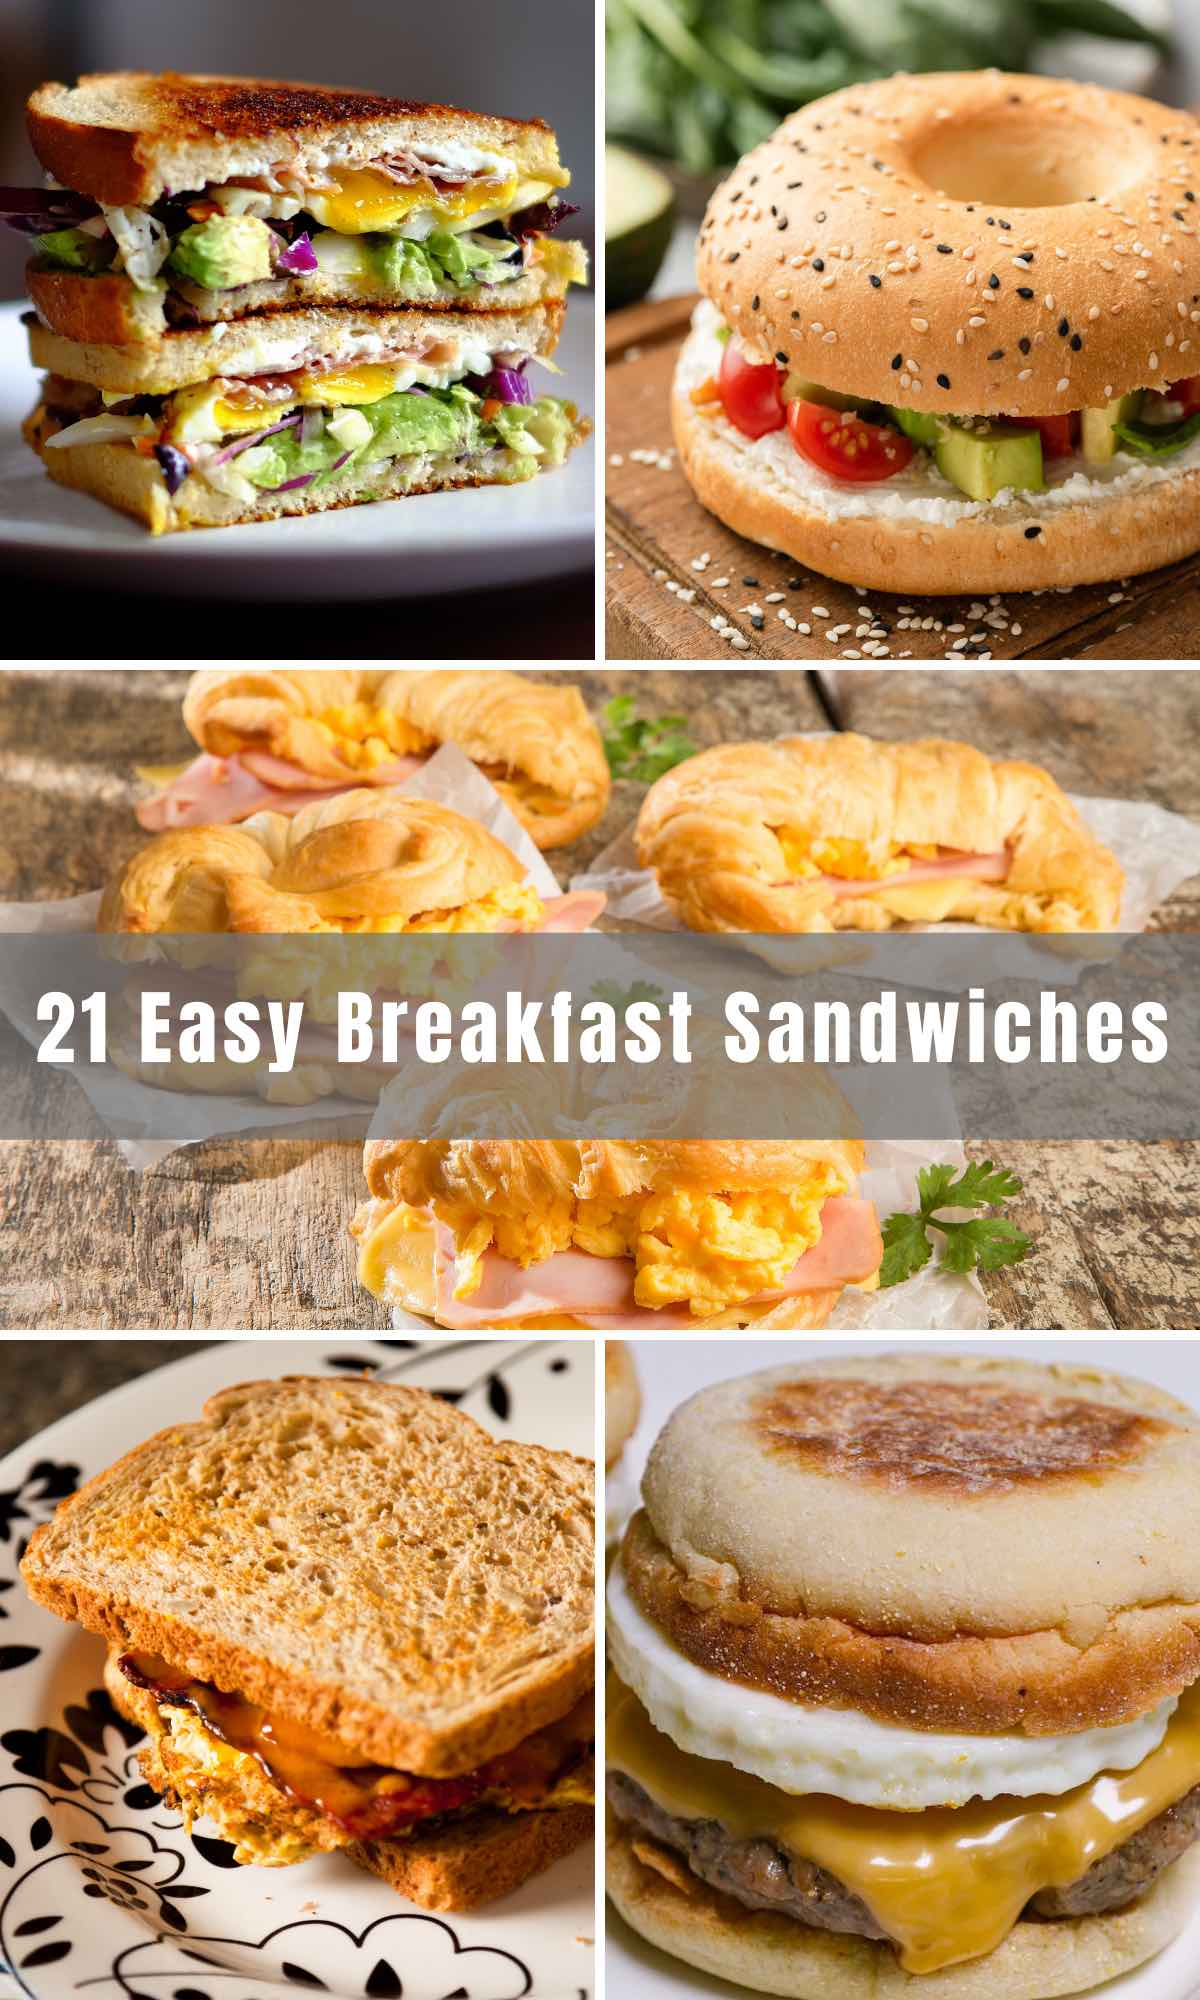 For busy mornings, a breakfast sandwich is the way to go. What's better than stacking all your favorite ingredients together for an easy, grab-and-go meal? We've rounded up the best Breakfast Sandwich Recipes, from simple bagel sandwiches to healthy vegetable sandwiches, to easy meals with delicious and wholesome ingredients like eggs, avocado and veggies